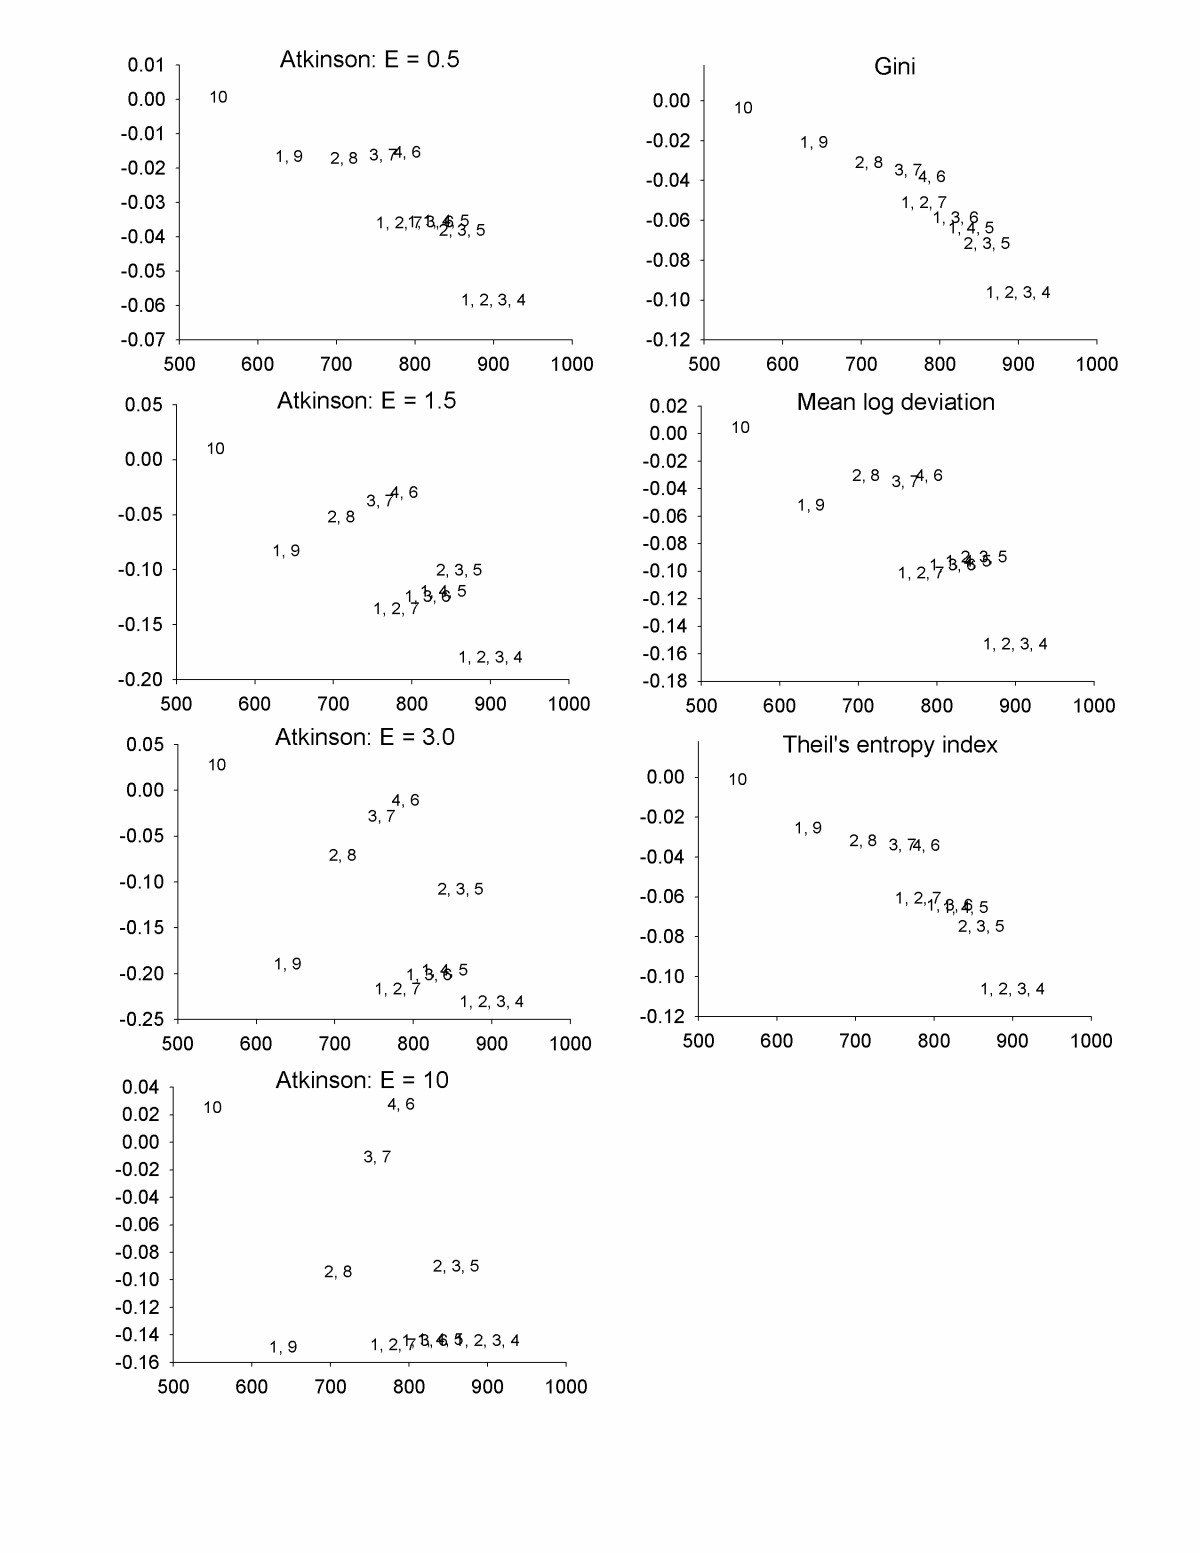 https://static-content.springer.com/image/art%3A10.1186%2F1475-9276-5-2/MediaObjects/12939_2004_Article_40_Fig3_HTML.jpg